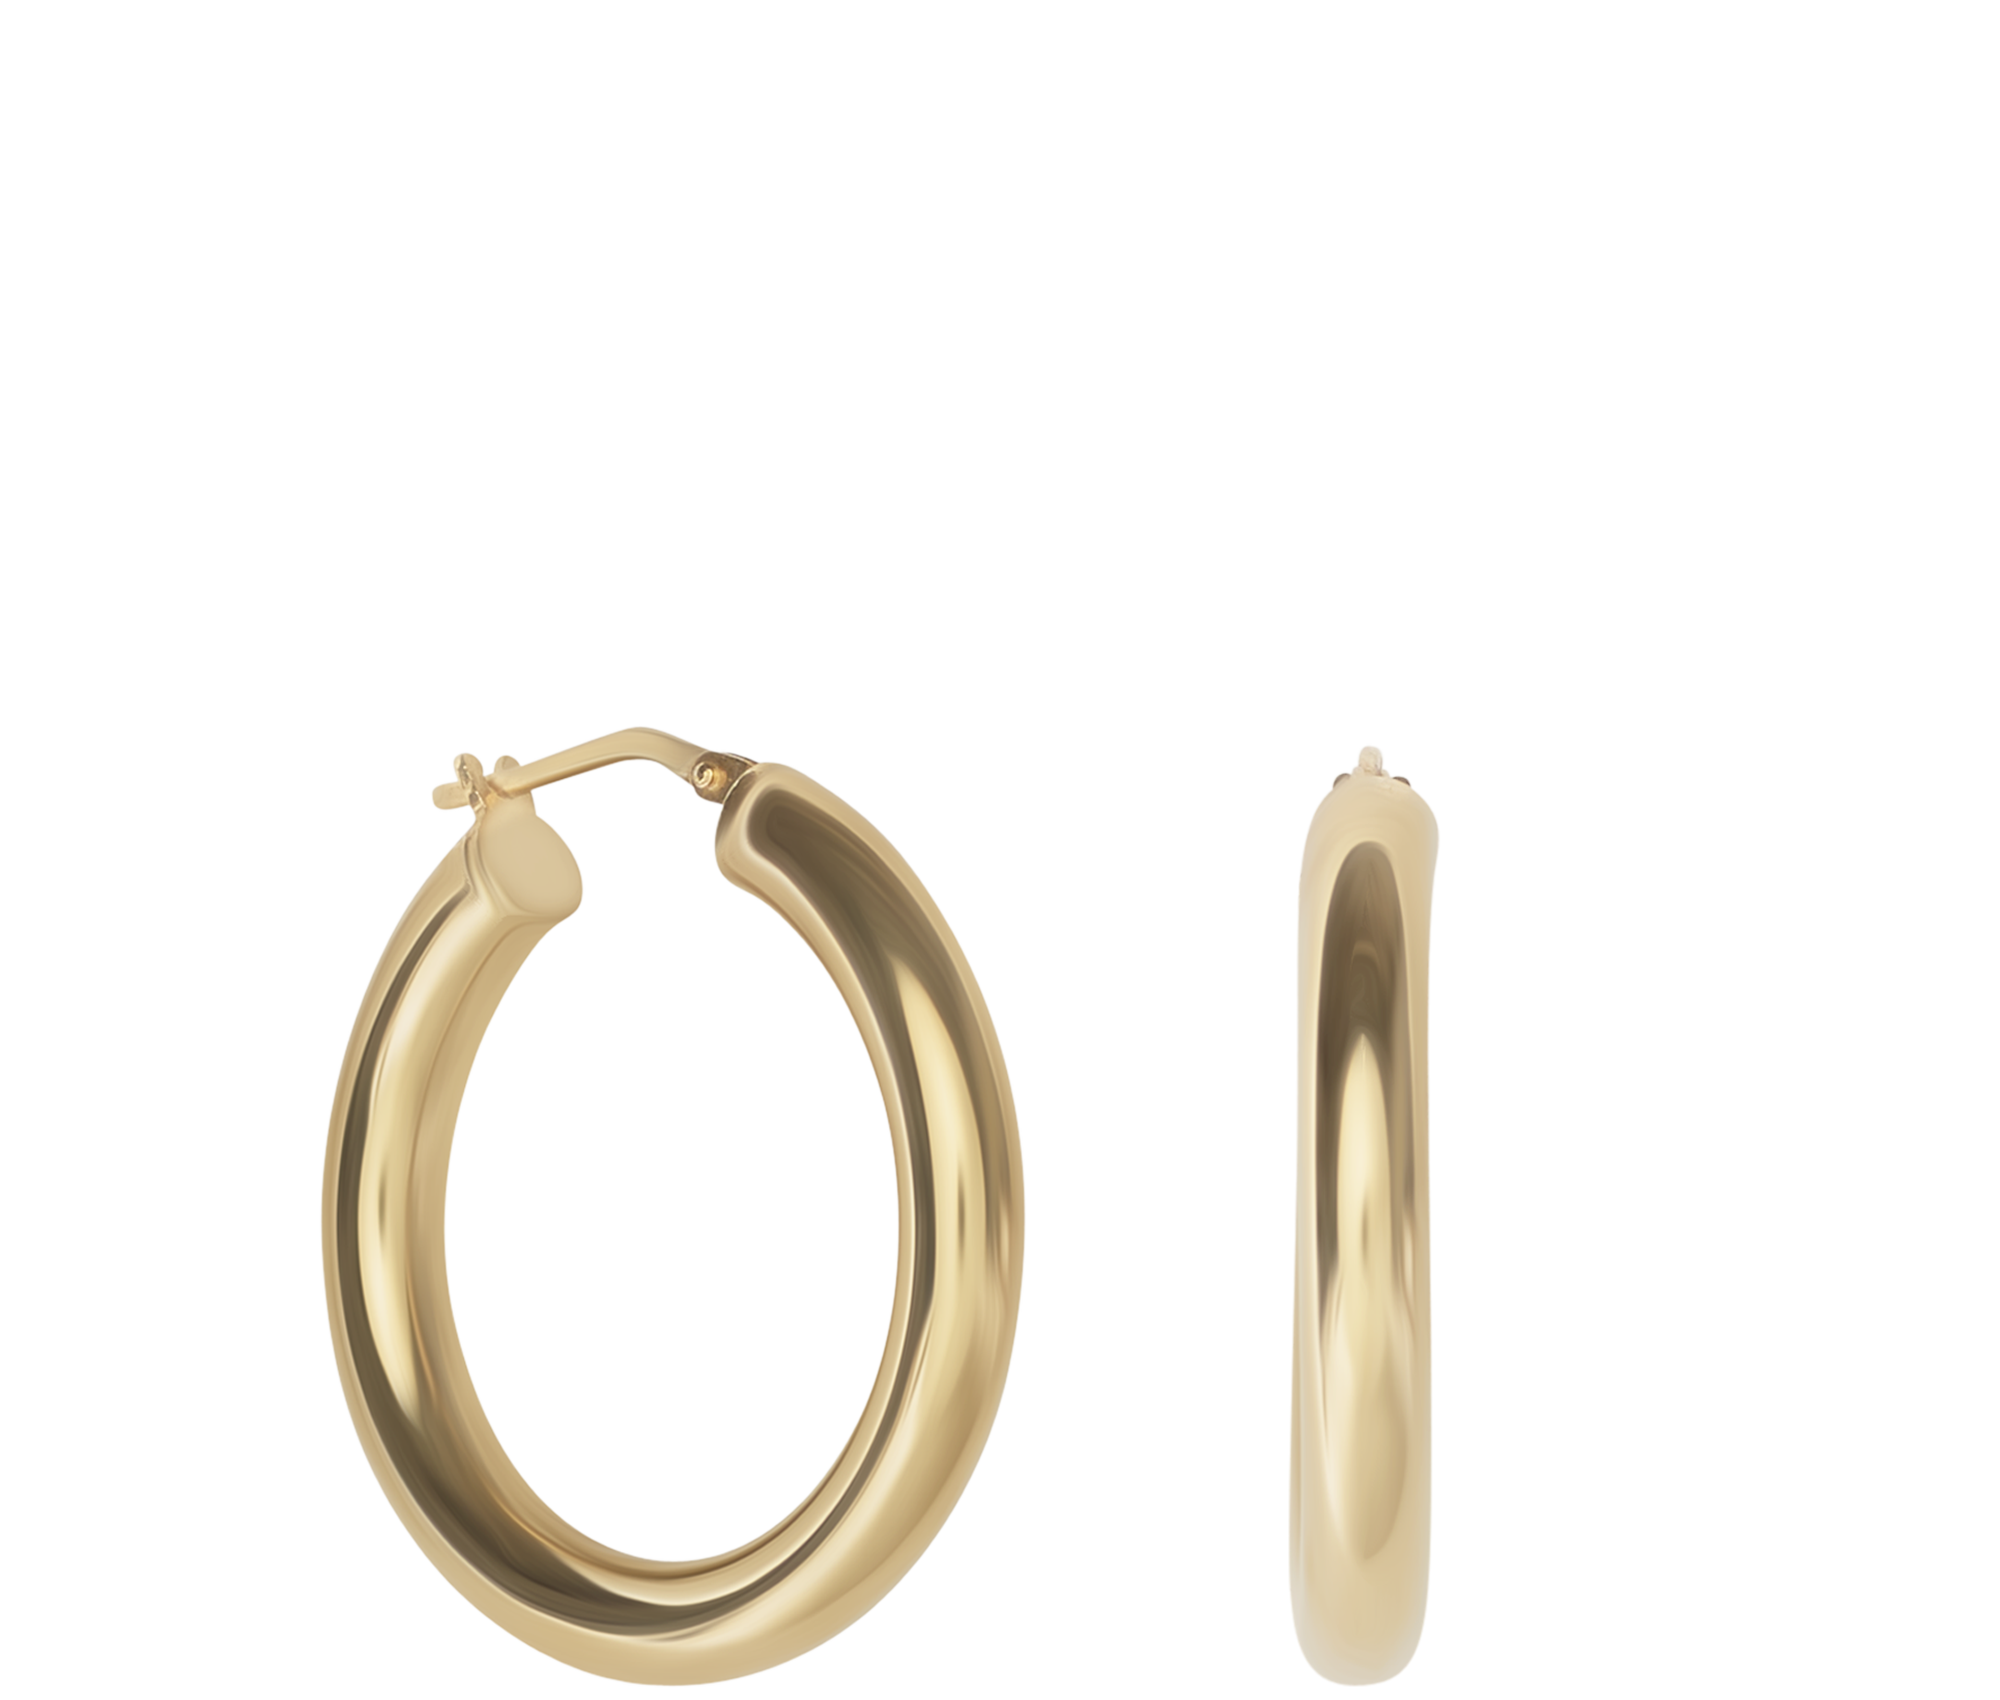 products/small-hollow-hoops-jewelry-16617956573284.png